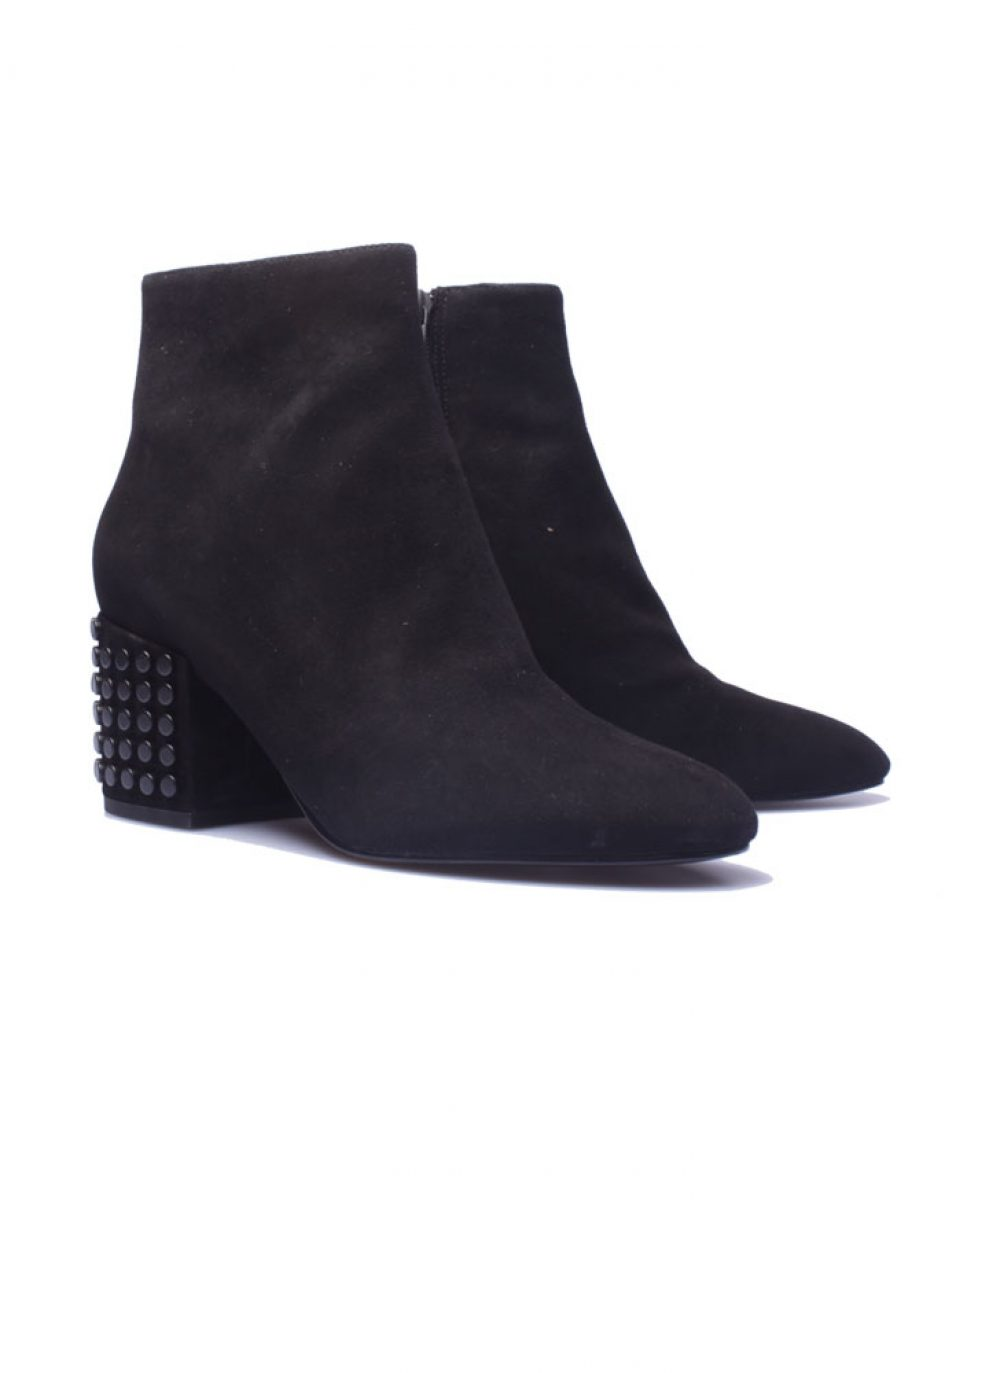 Kendall Kylie + Chaussures Noires Taille 40 Hommes Kwui5wV